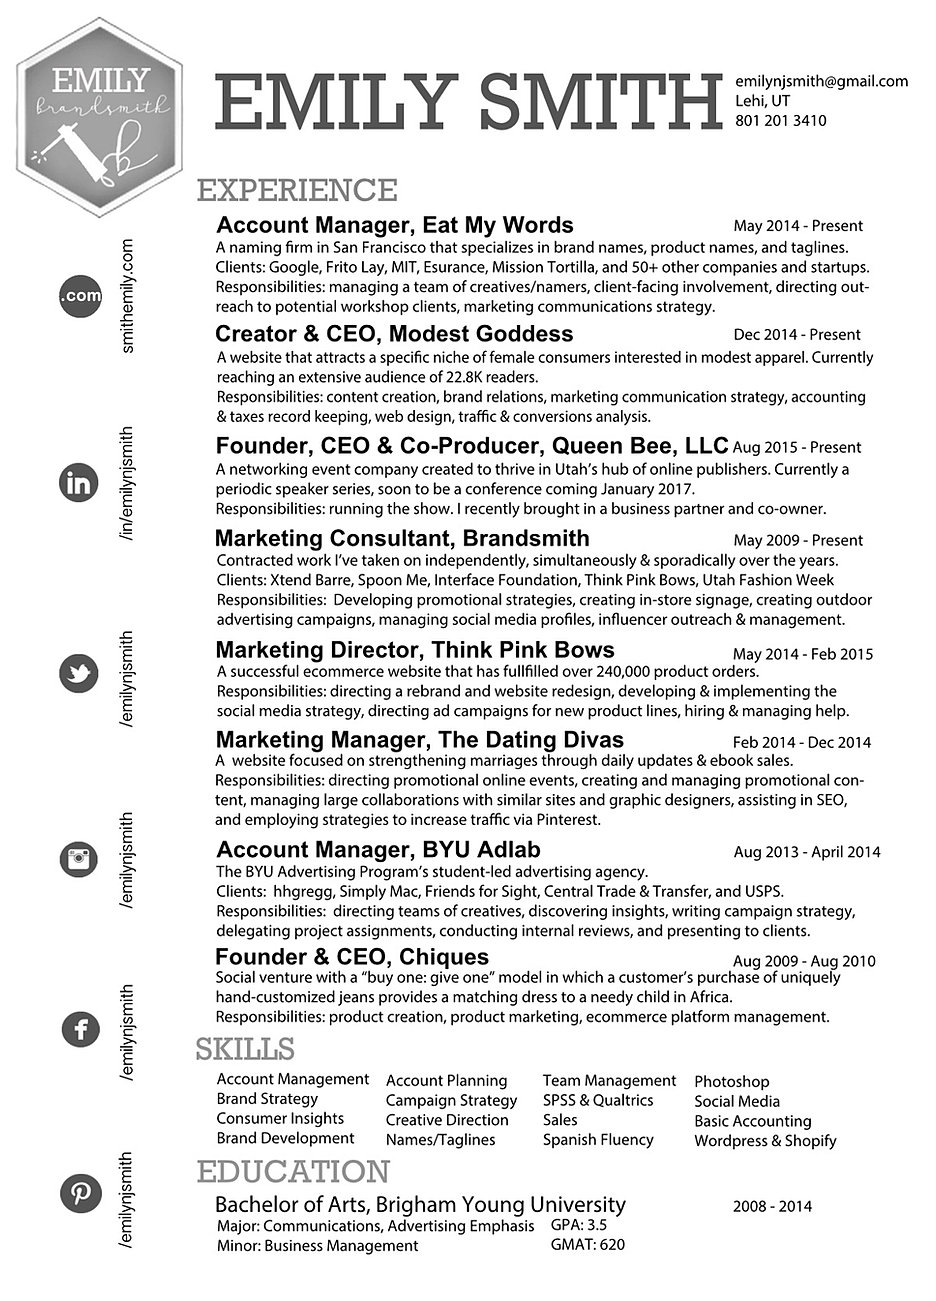 smithemily resume contact